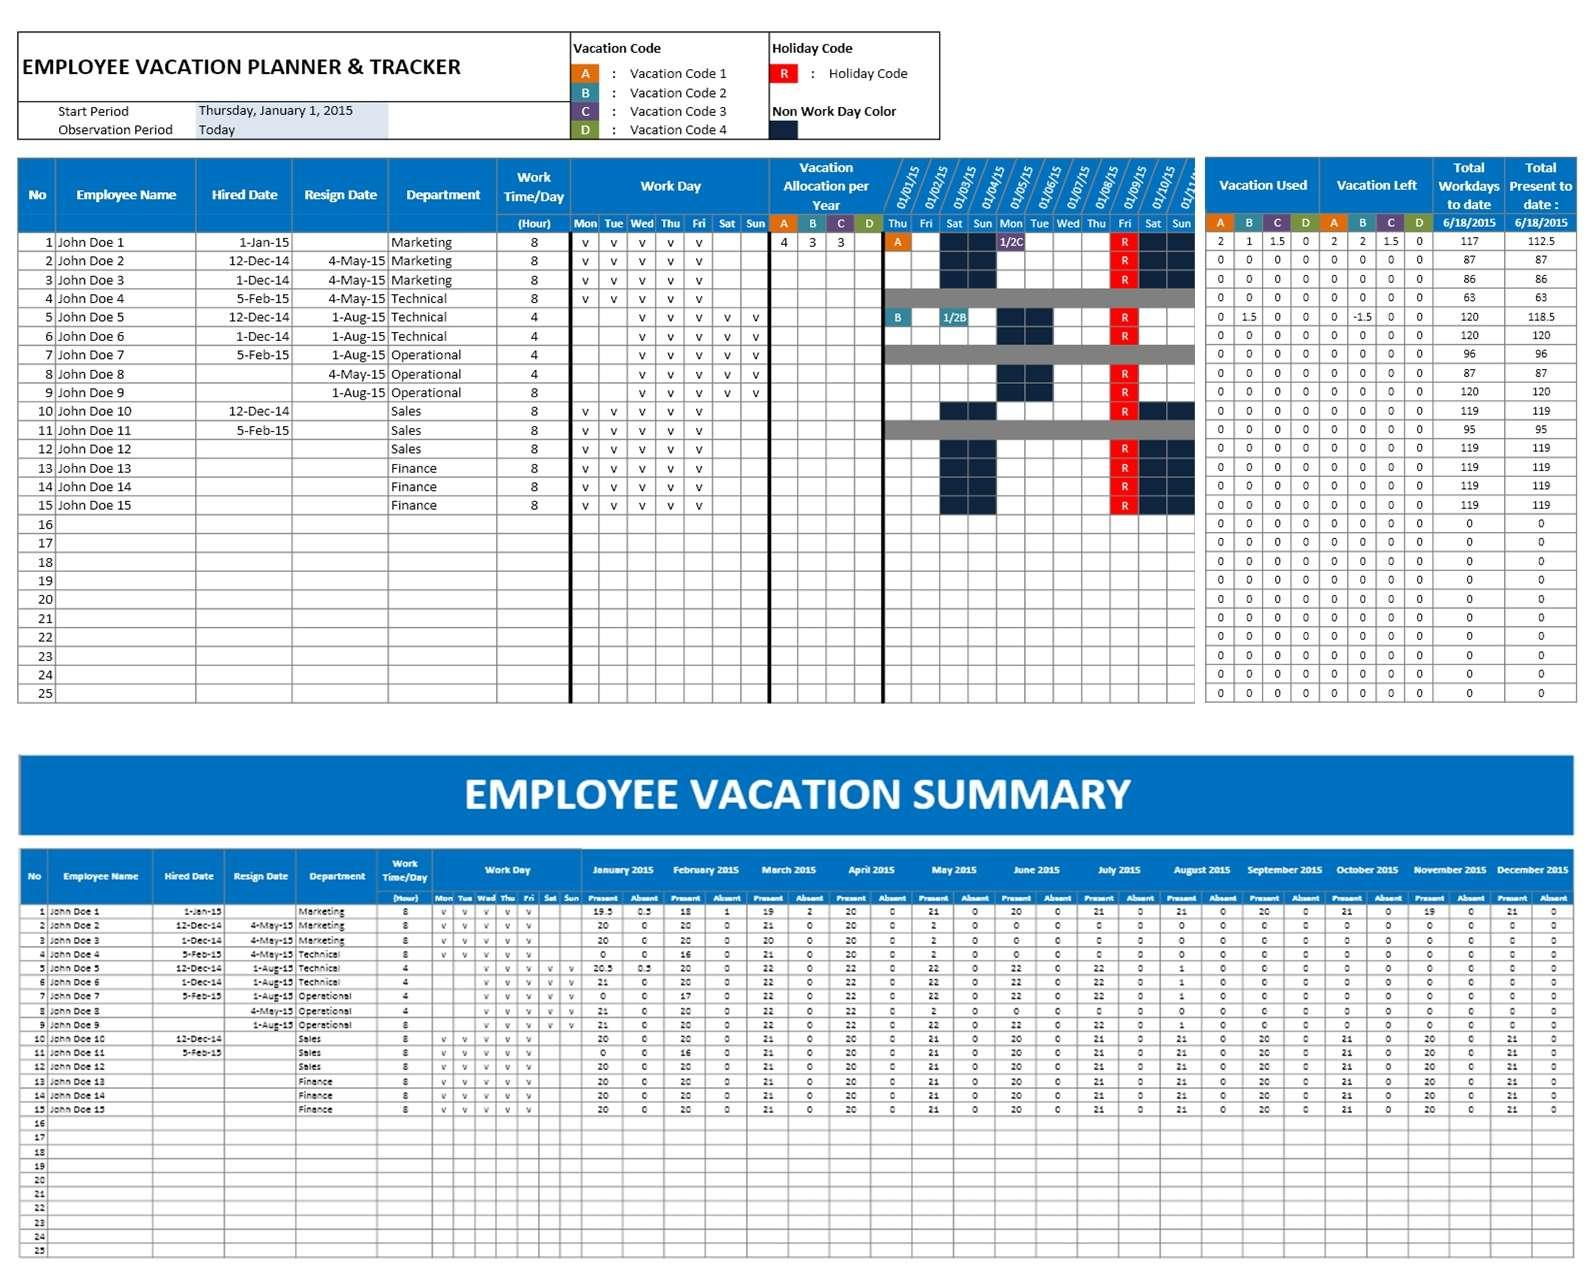 Employee's Vacation Tracking Template